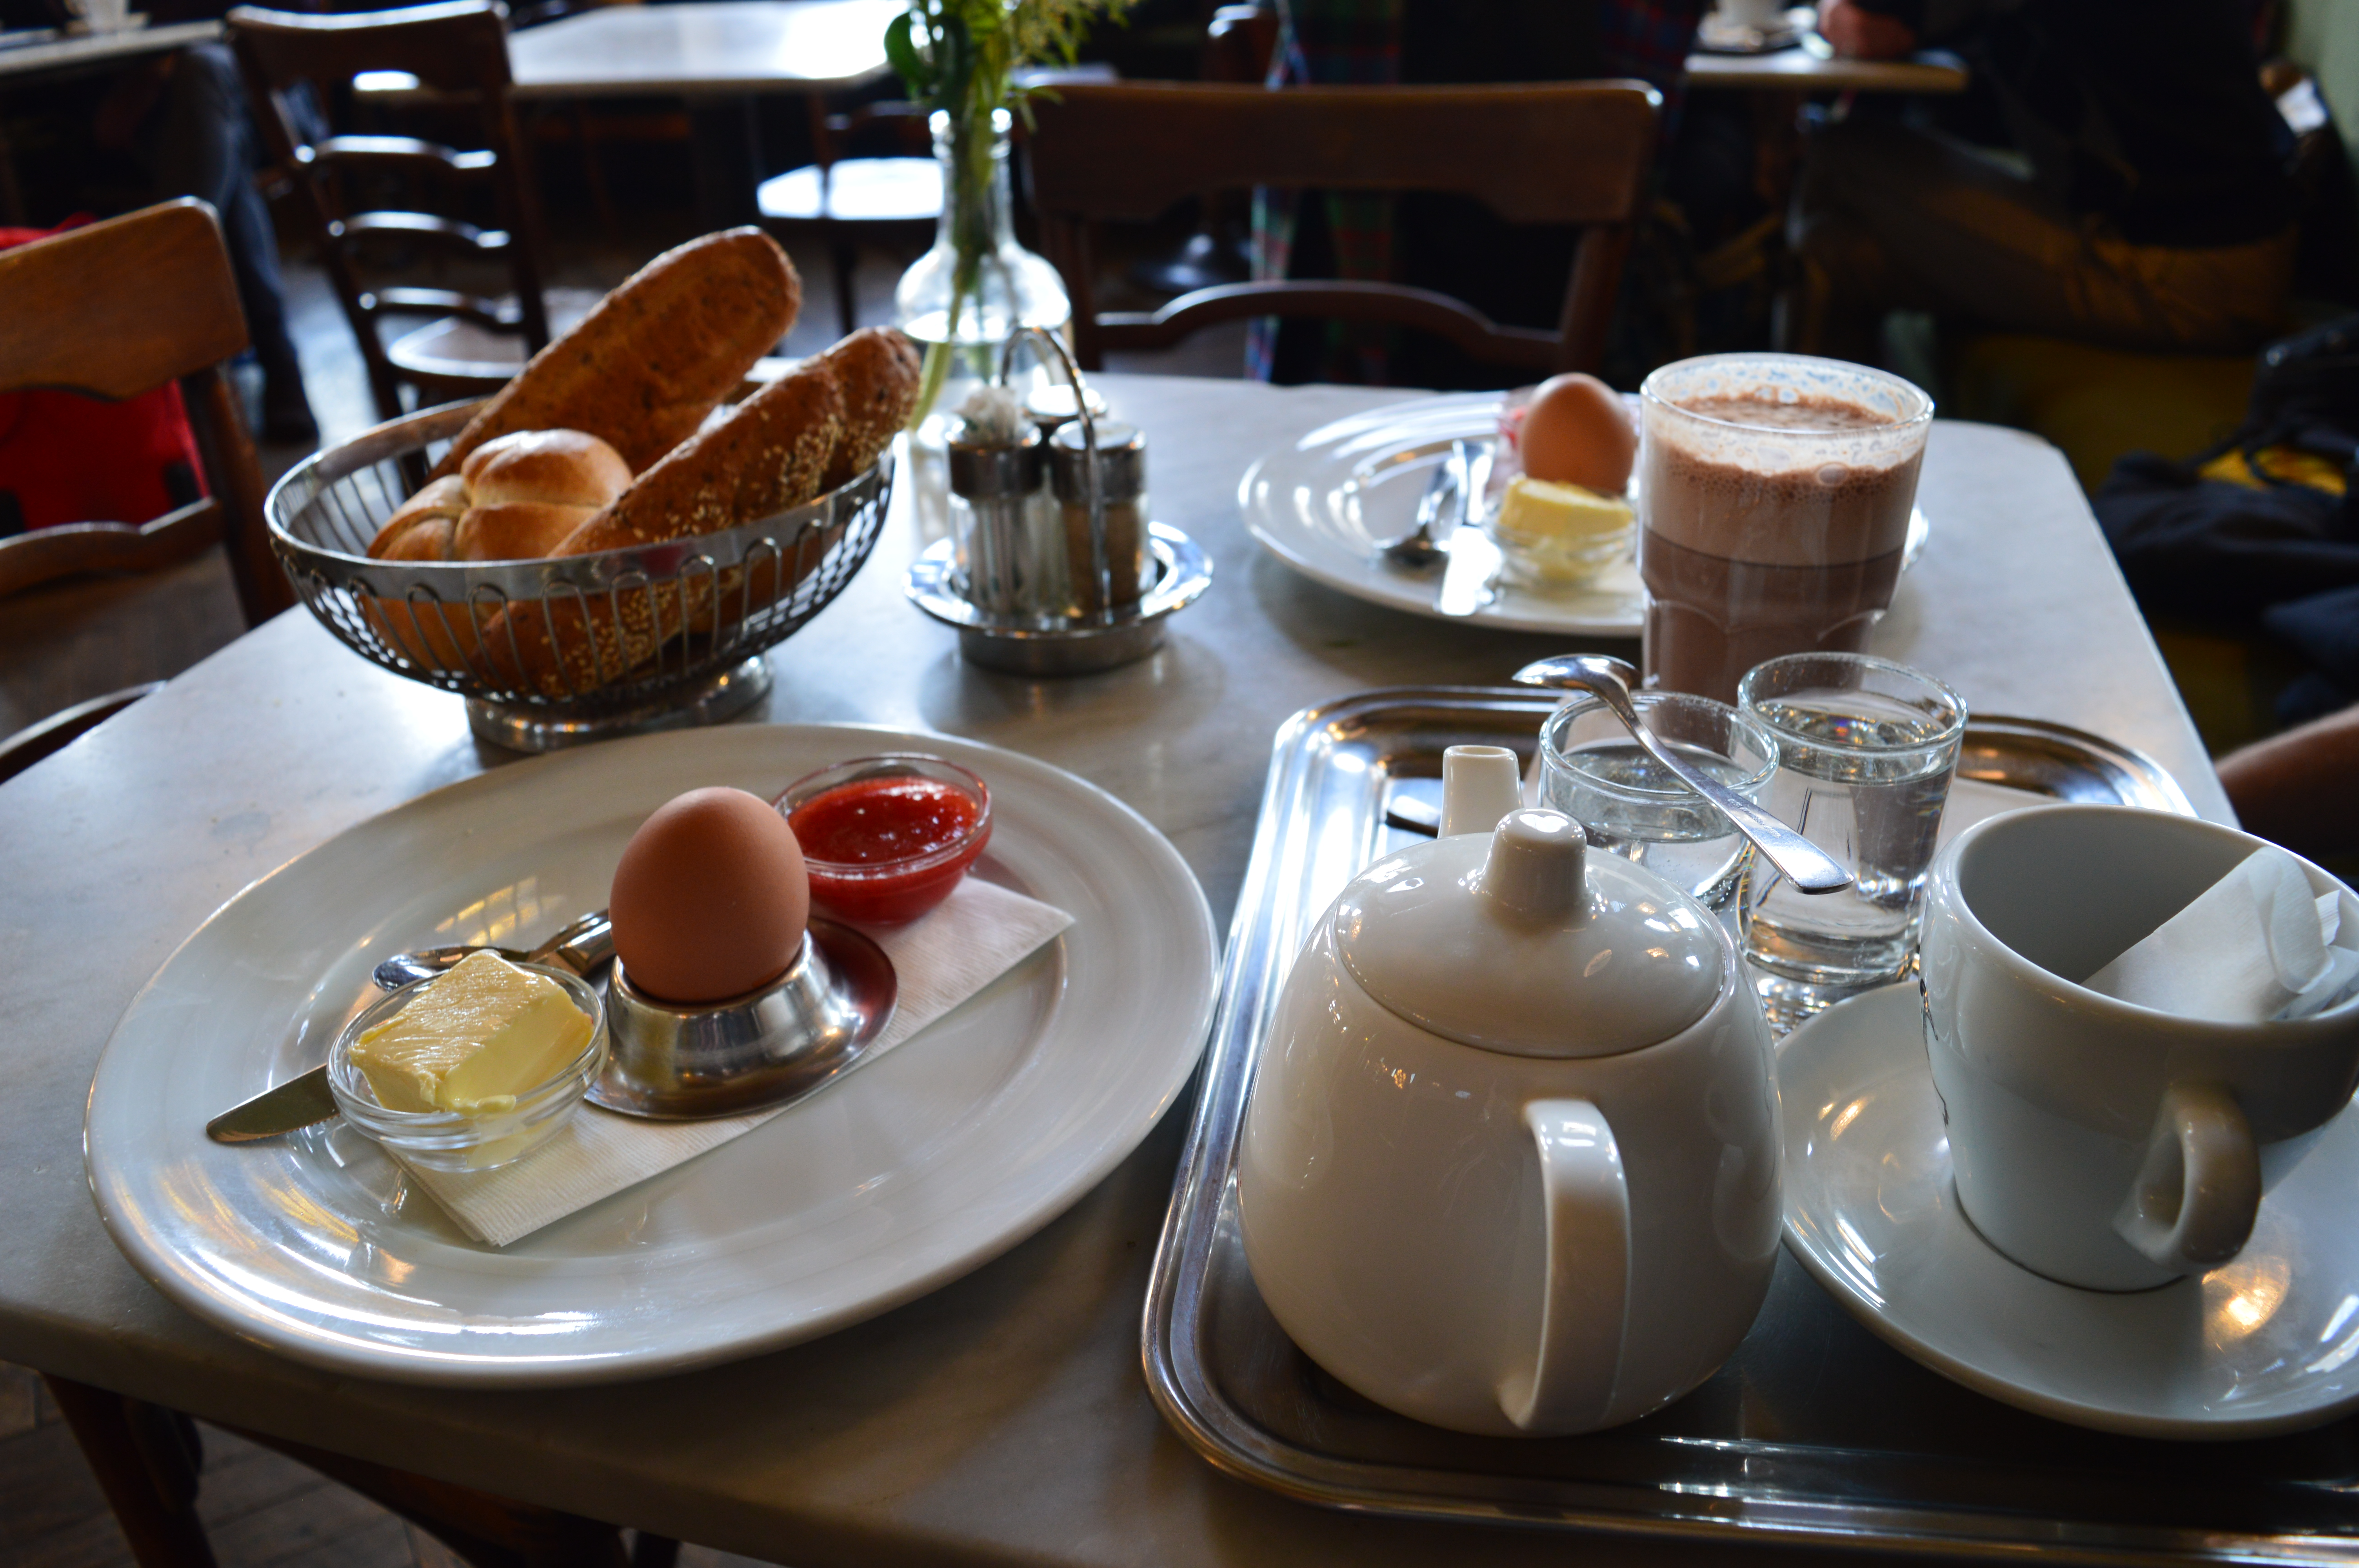 viennese breakfast with hard-boiled eggs, bread, butter, jam and coffee in Austria